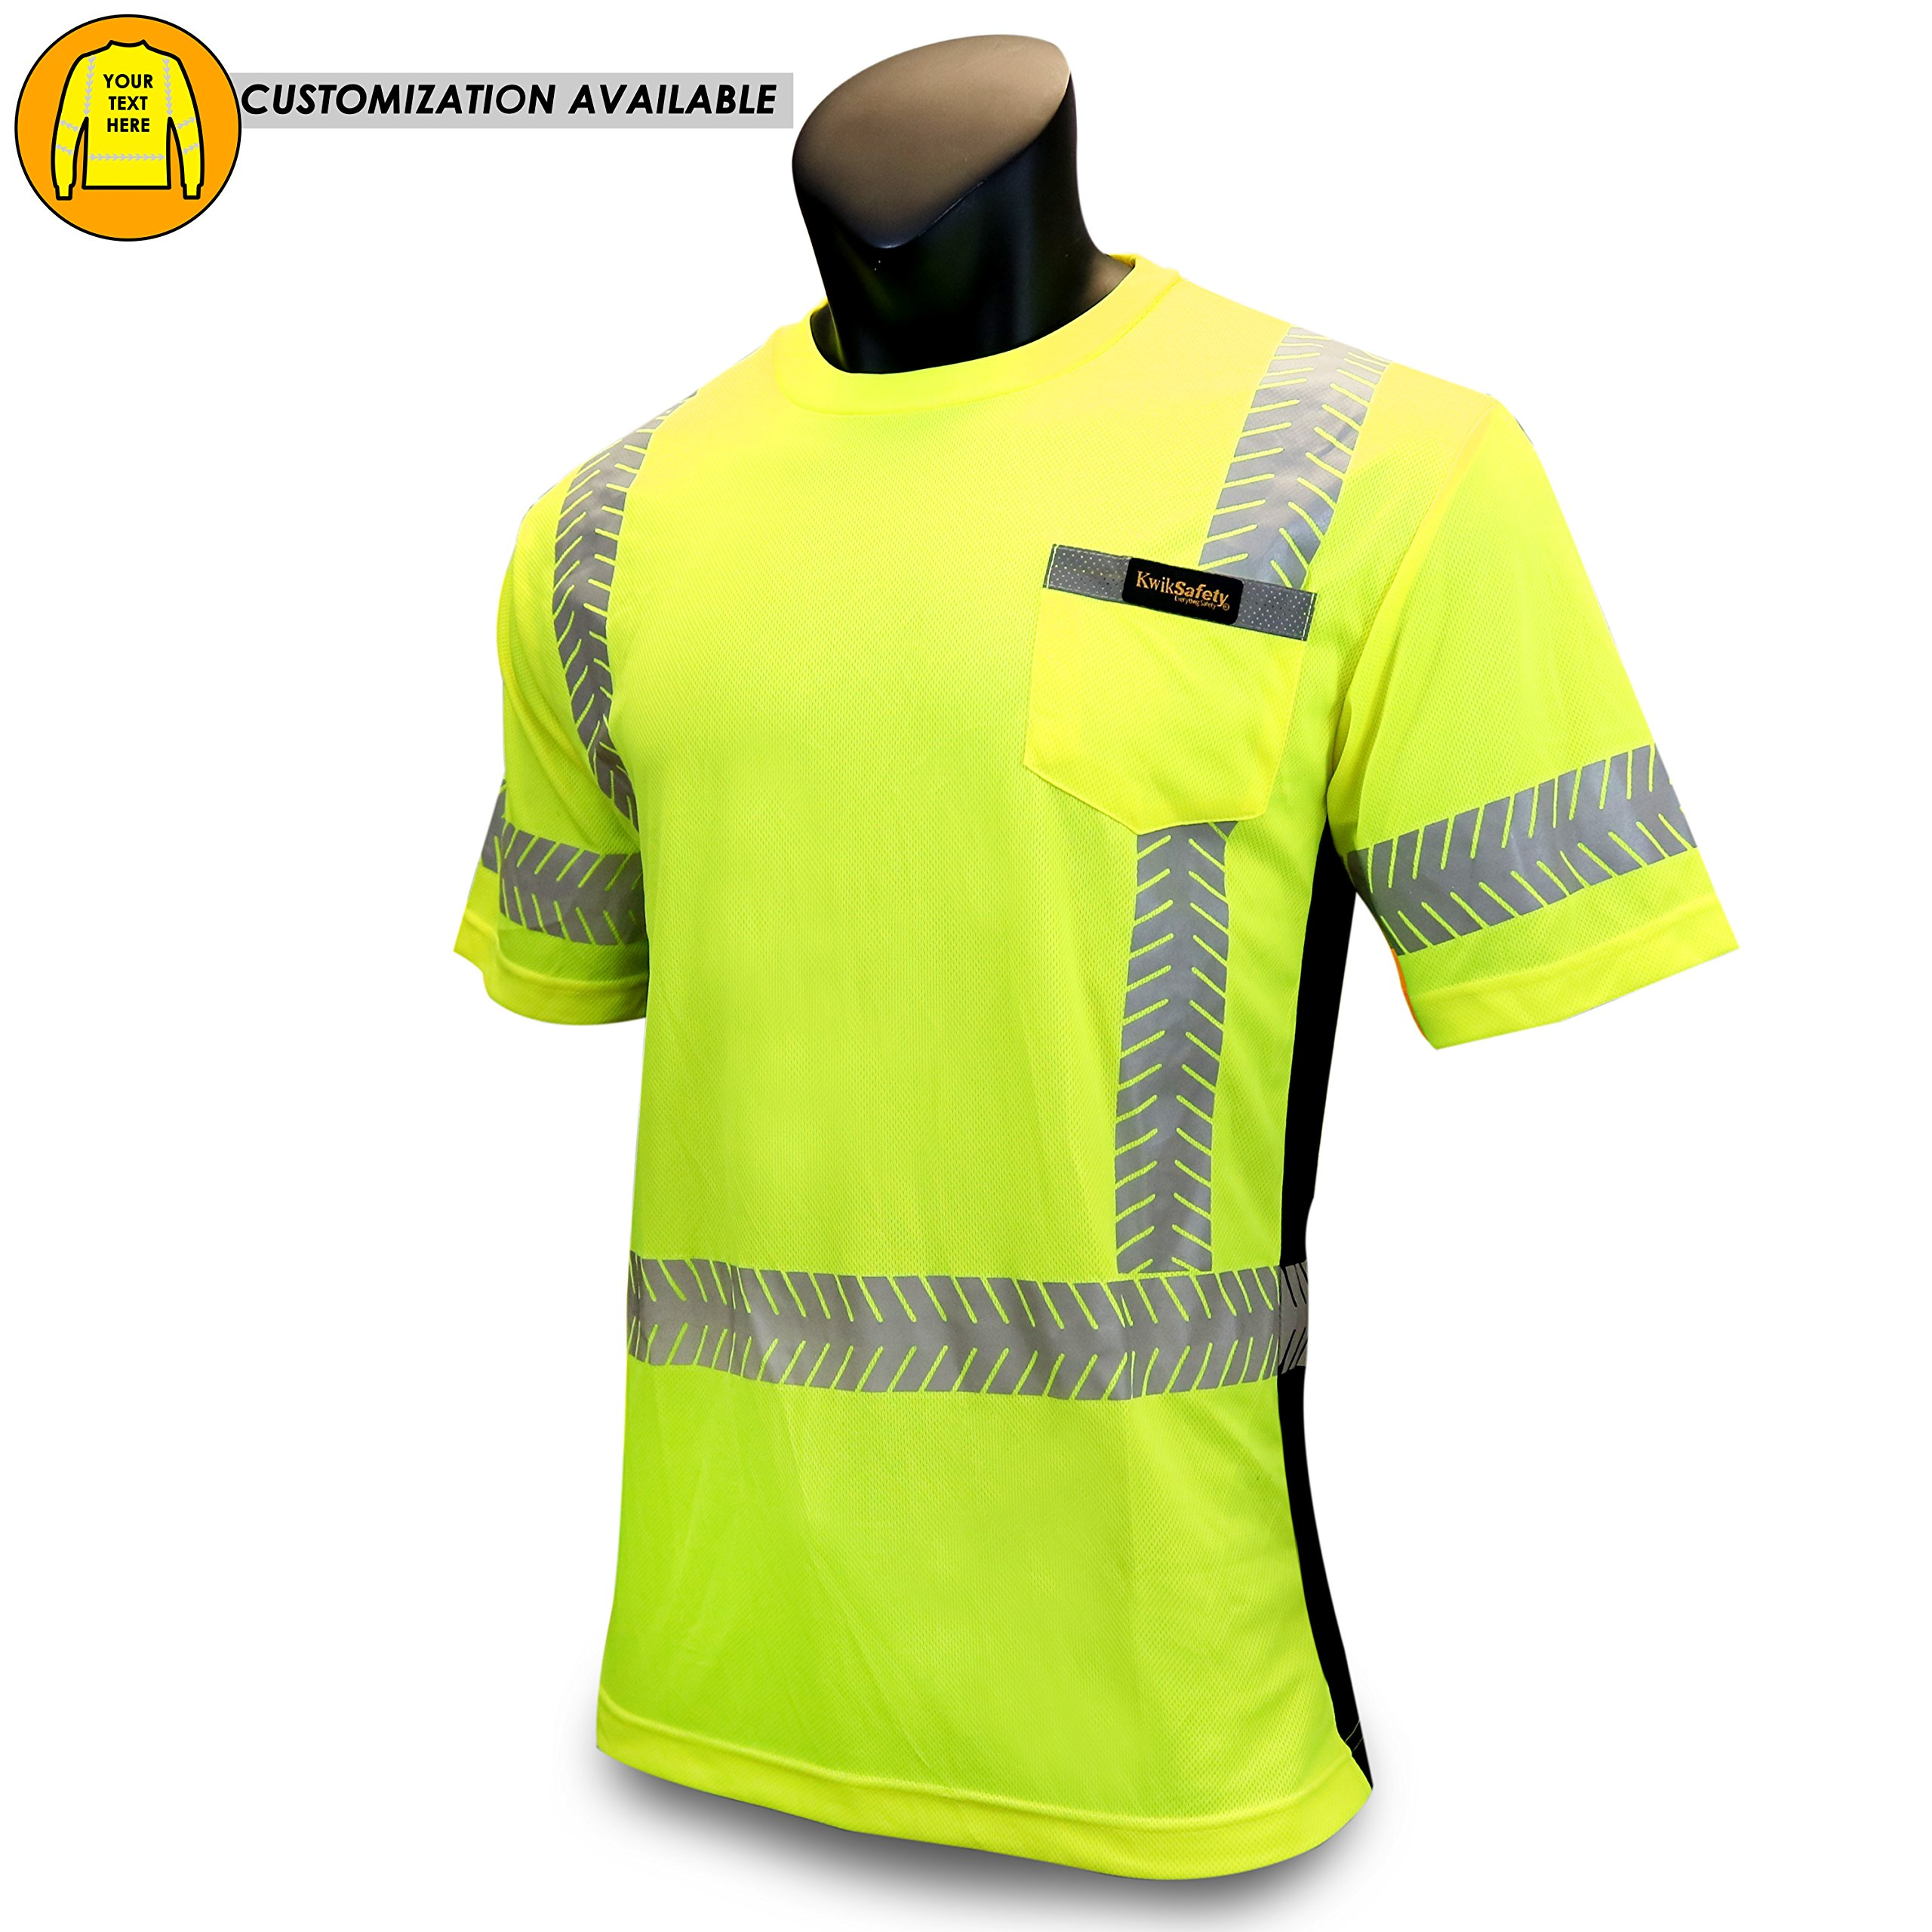 KwikSafety DISCOVERY | Class 2 Short Sleeve Safety Shirt | 360° ANSI Compliant Work Wear | Hi Vis Moisture Wicking Silver Fishbone | Men Women Construction Exercise Security | Yellow X-Large